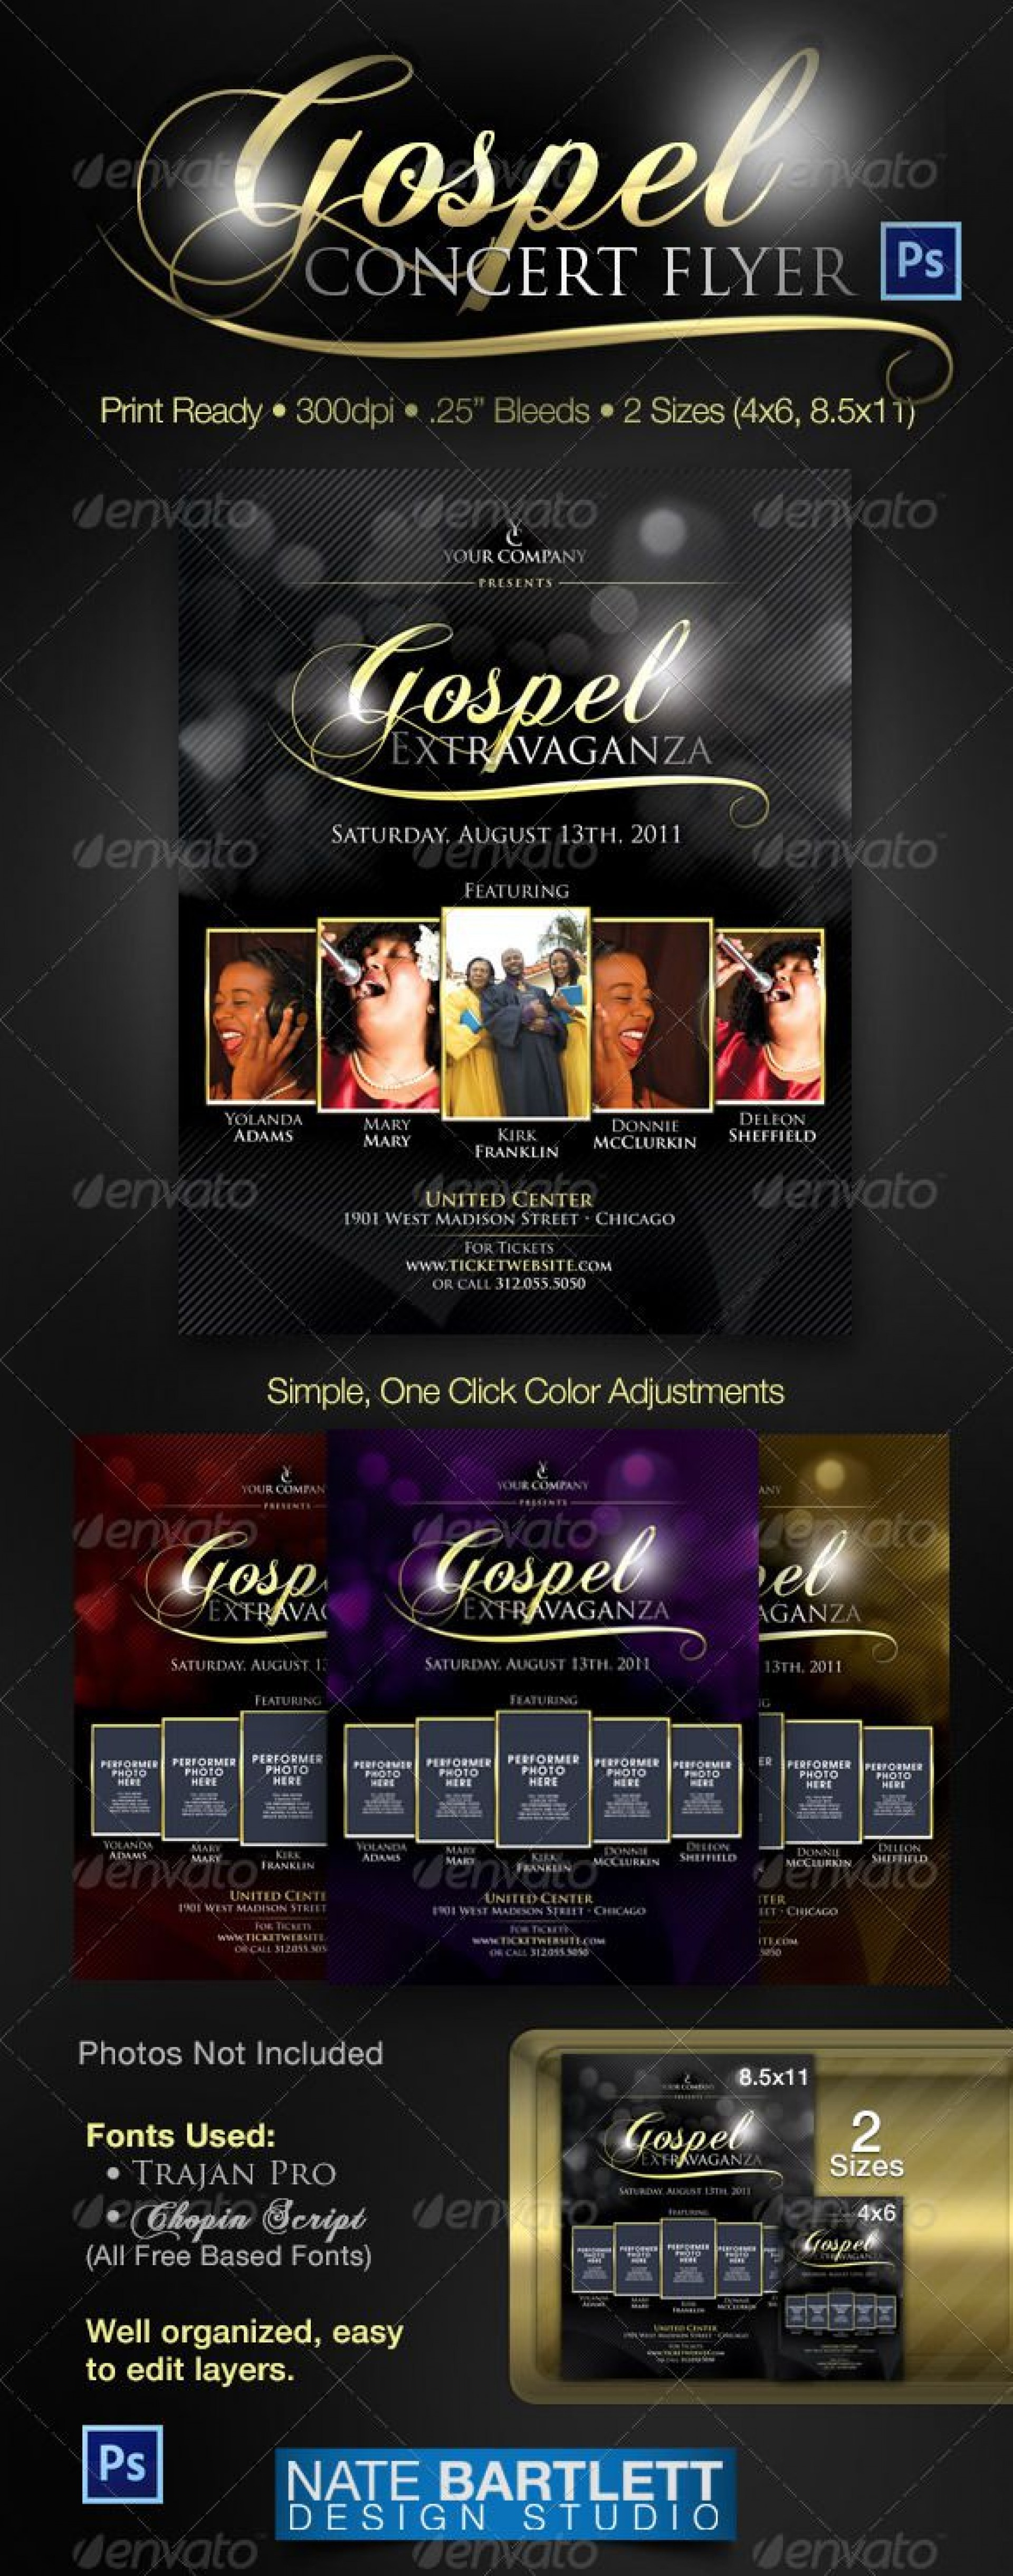 008 Breathtaking Church Flyer Template Free Example  Easter Anniversary Conference Psd1920